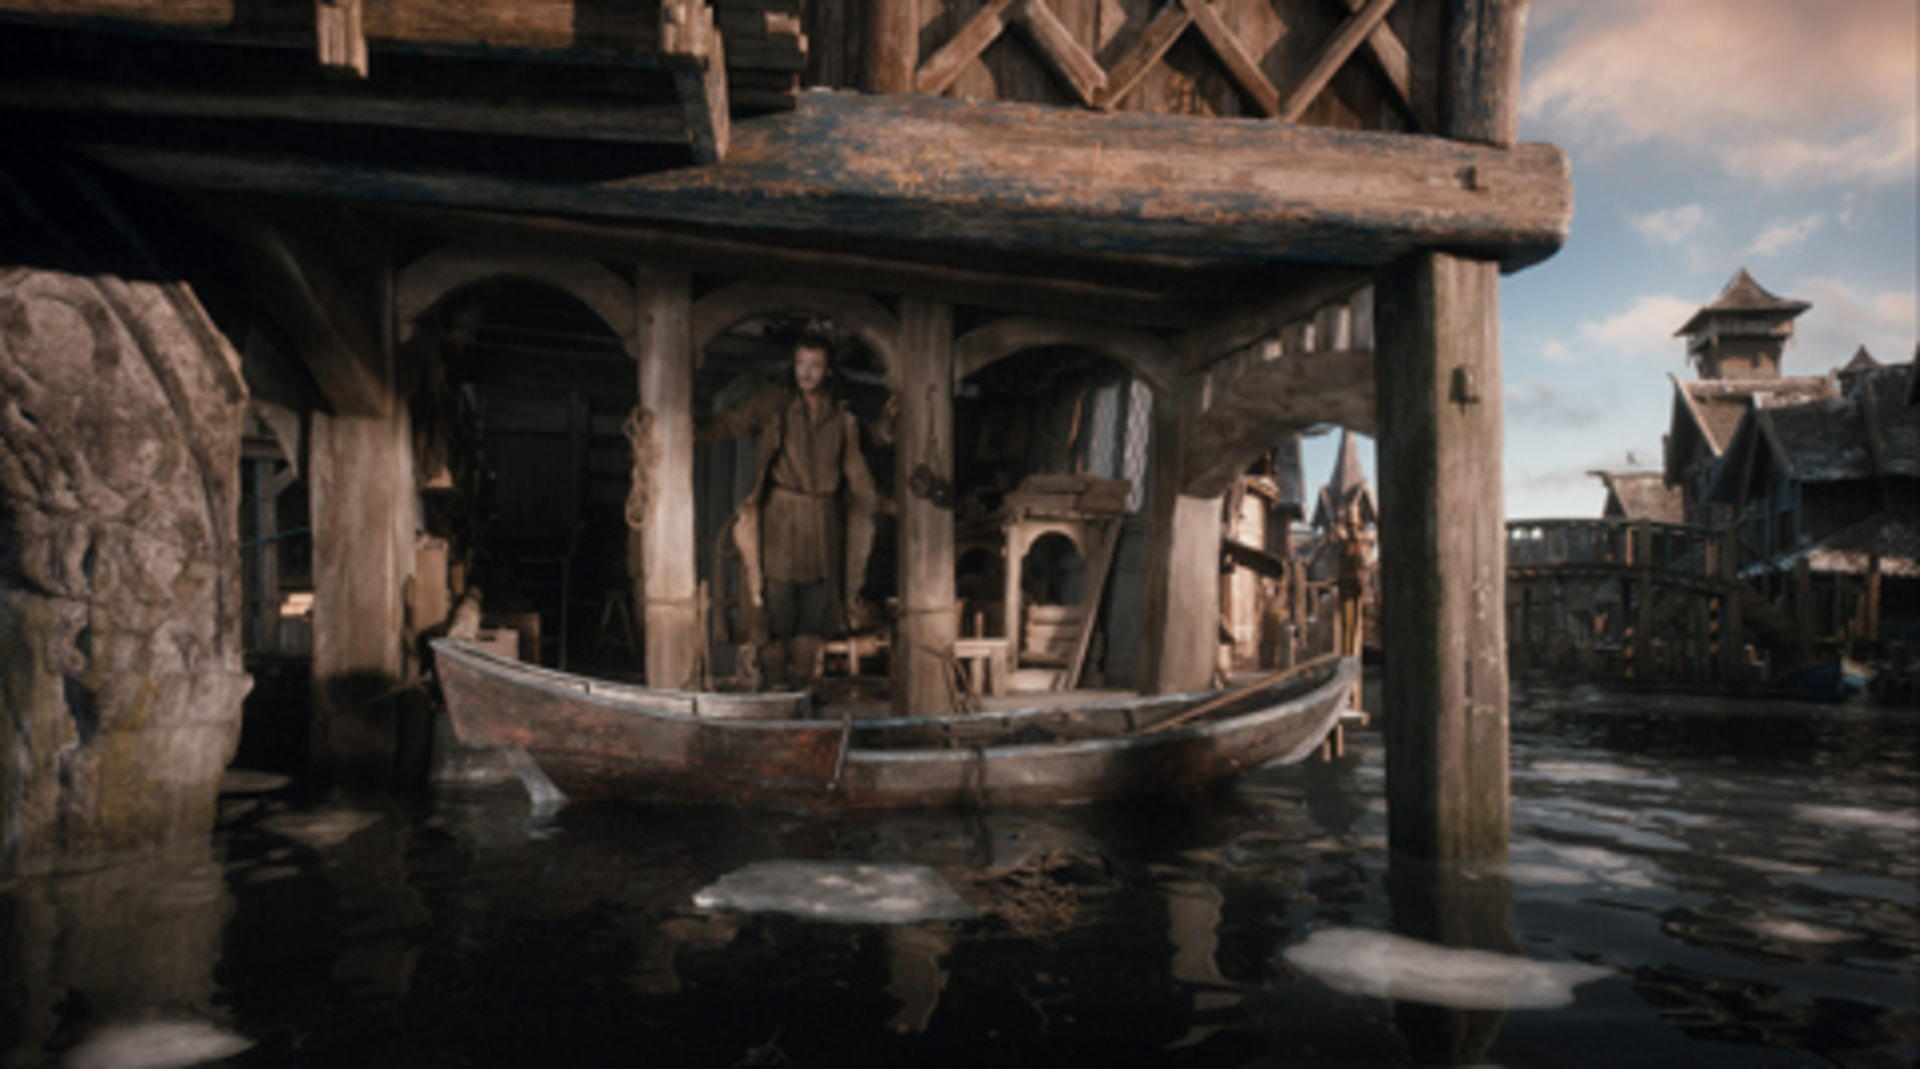 The Hobbit: The Desolation of Smaug - Image 15